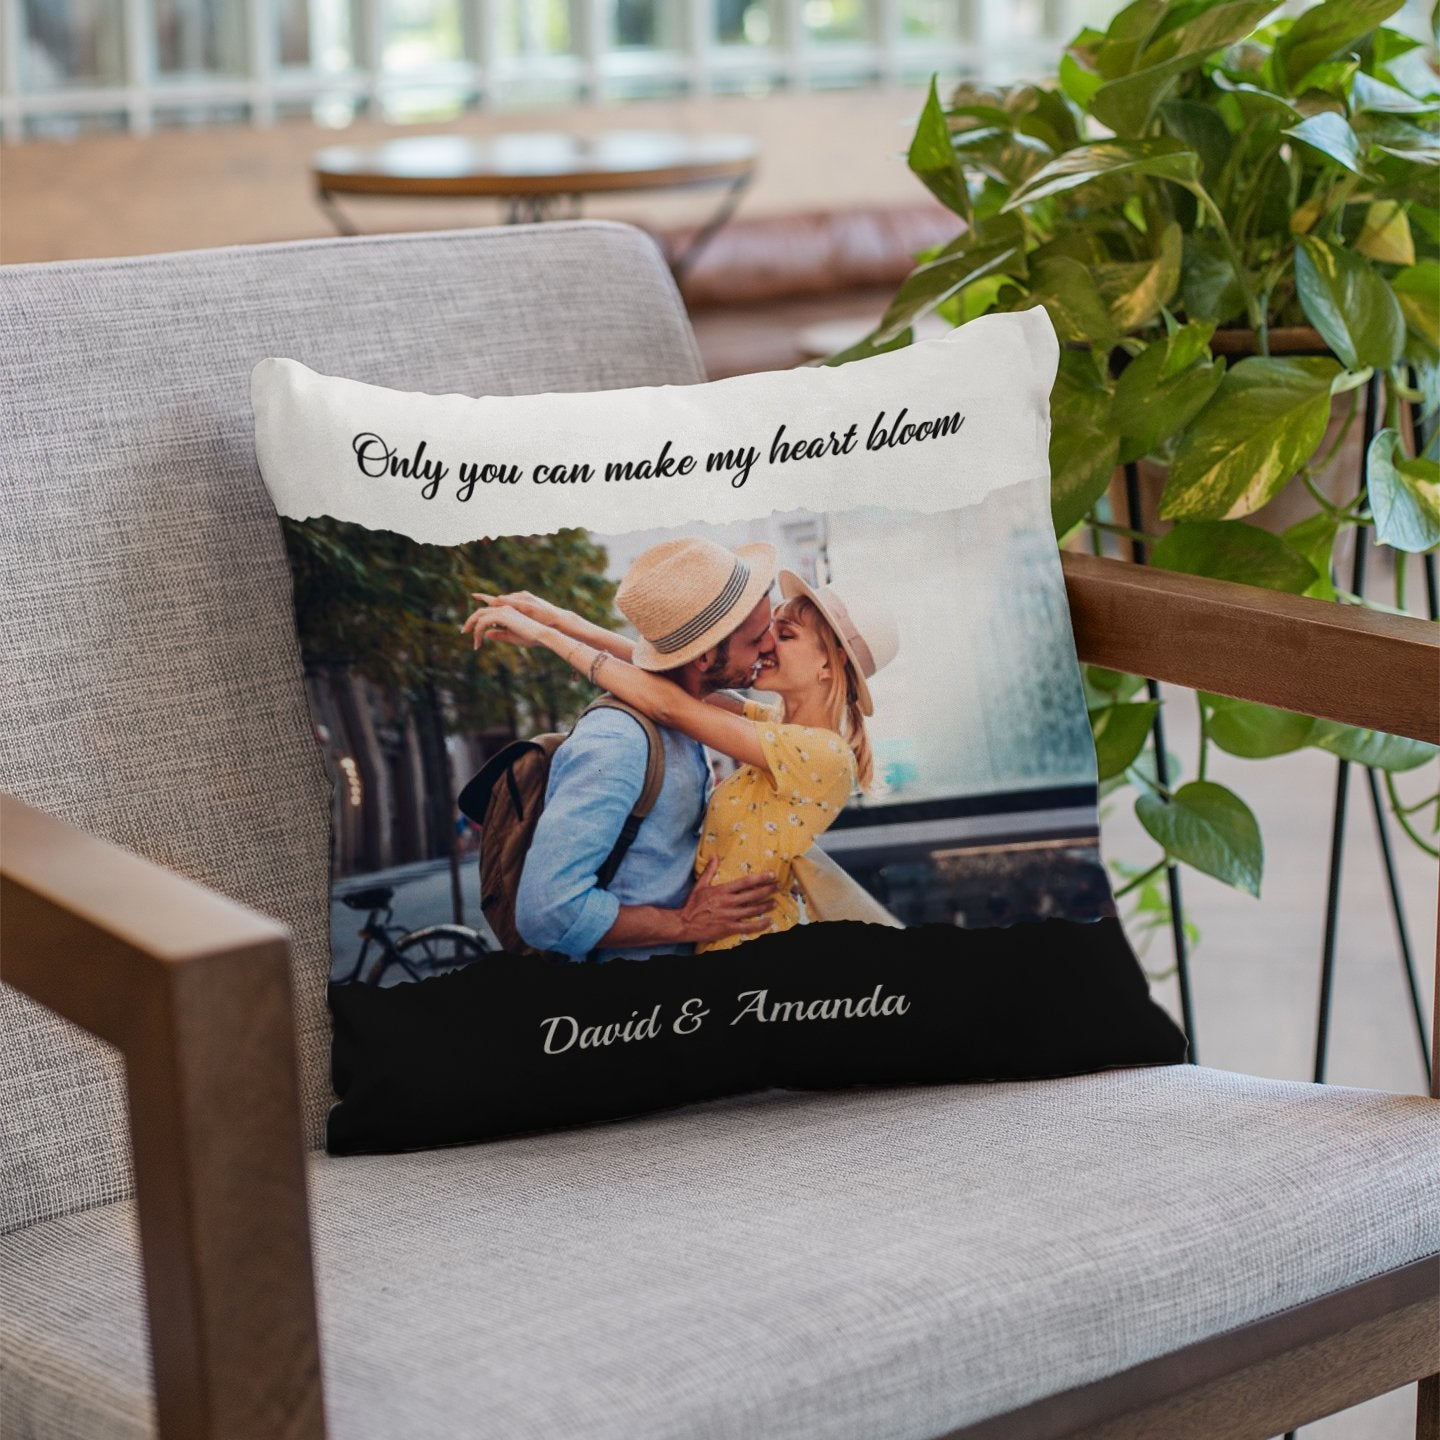 Girls always like to have a pillow when she rests, so get her a special pillow that makes her miss you and love you more. In that case, a photo pillow is a perfect idea. Just customize a pillow with your favorite photo and a personal message on it. Your interesting gift will make her smile whenever she sees it.